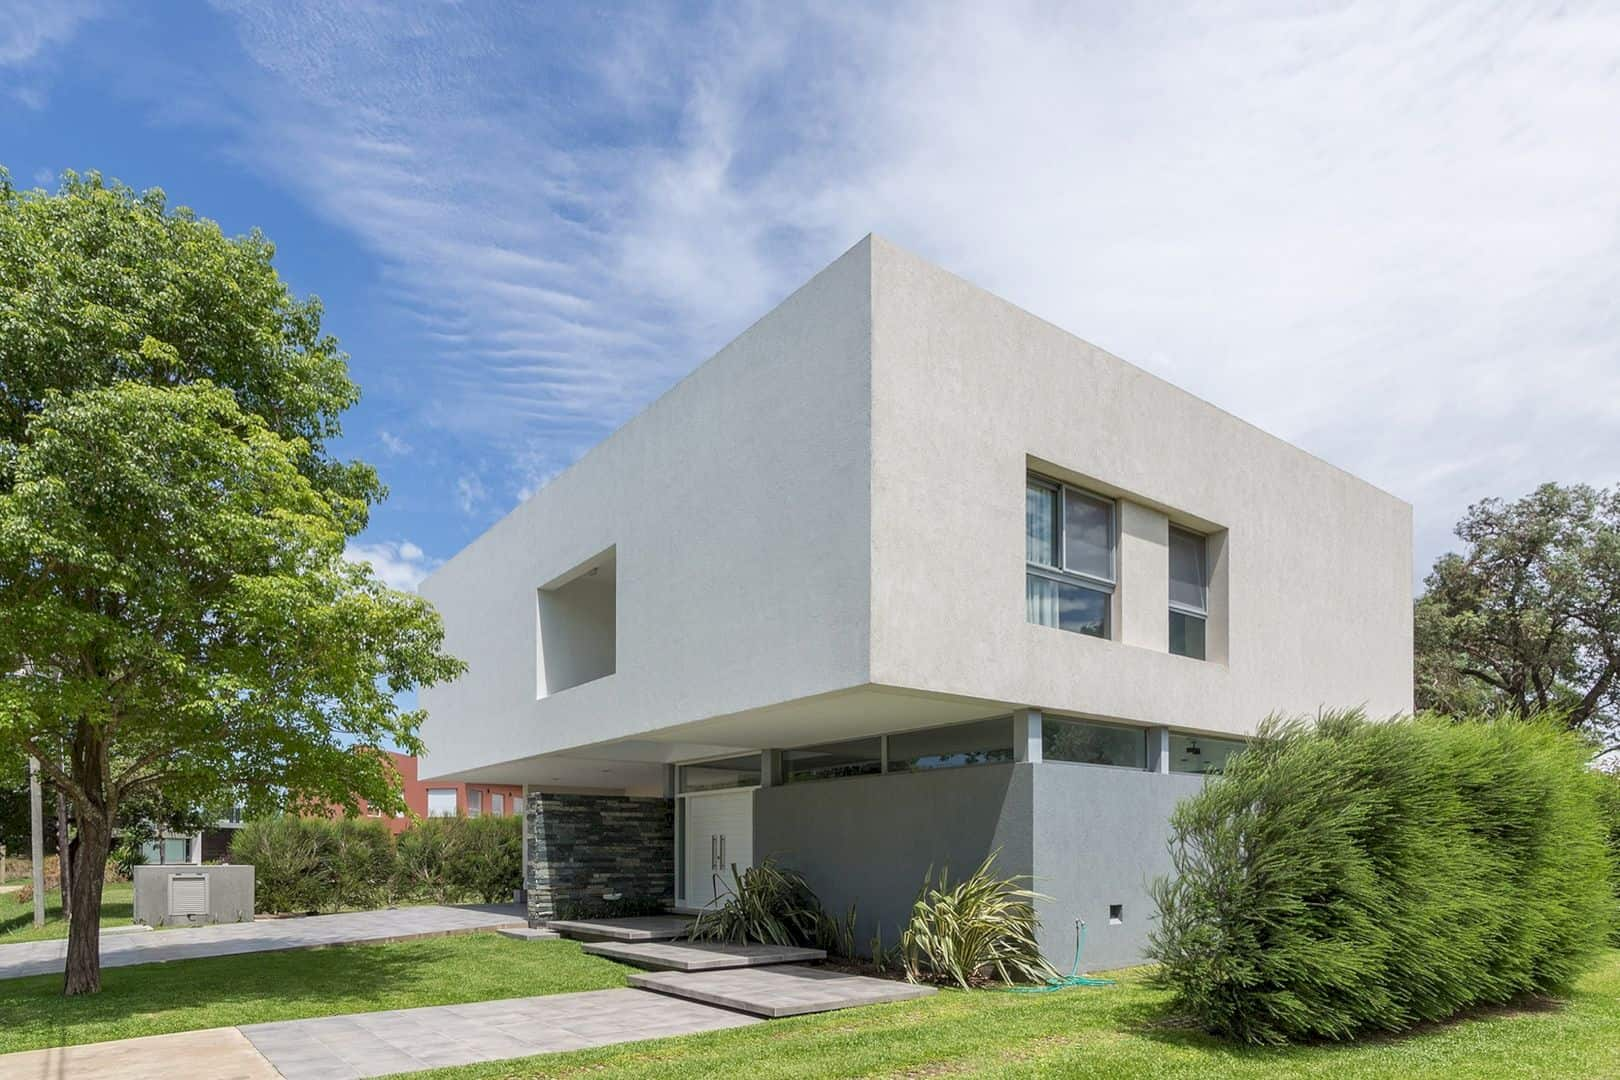 House In El Paso Enhancing The Relationship Inside With The Surrounding Landscape 7